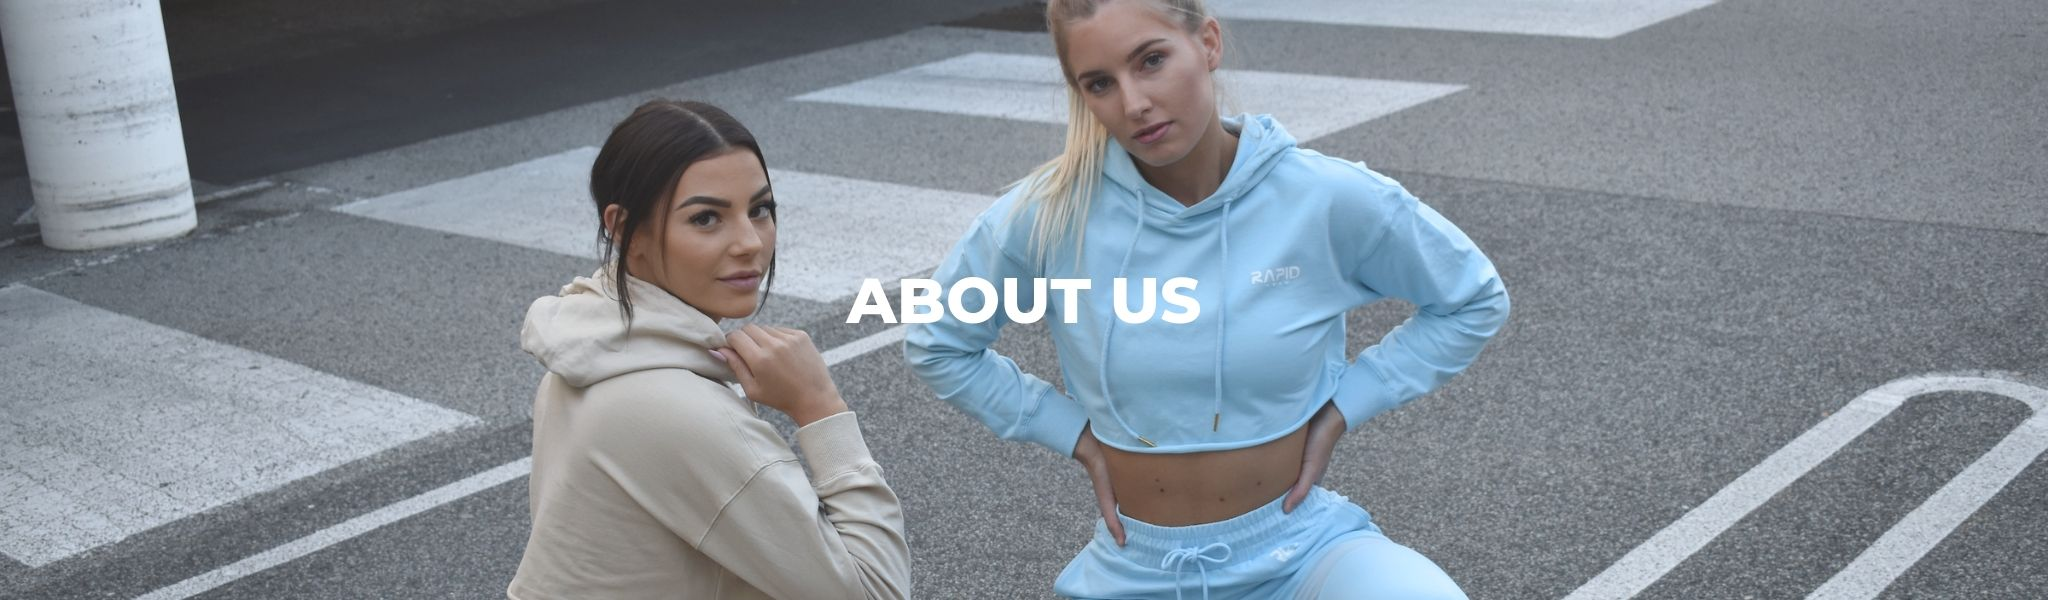 About us fitfashion